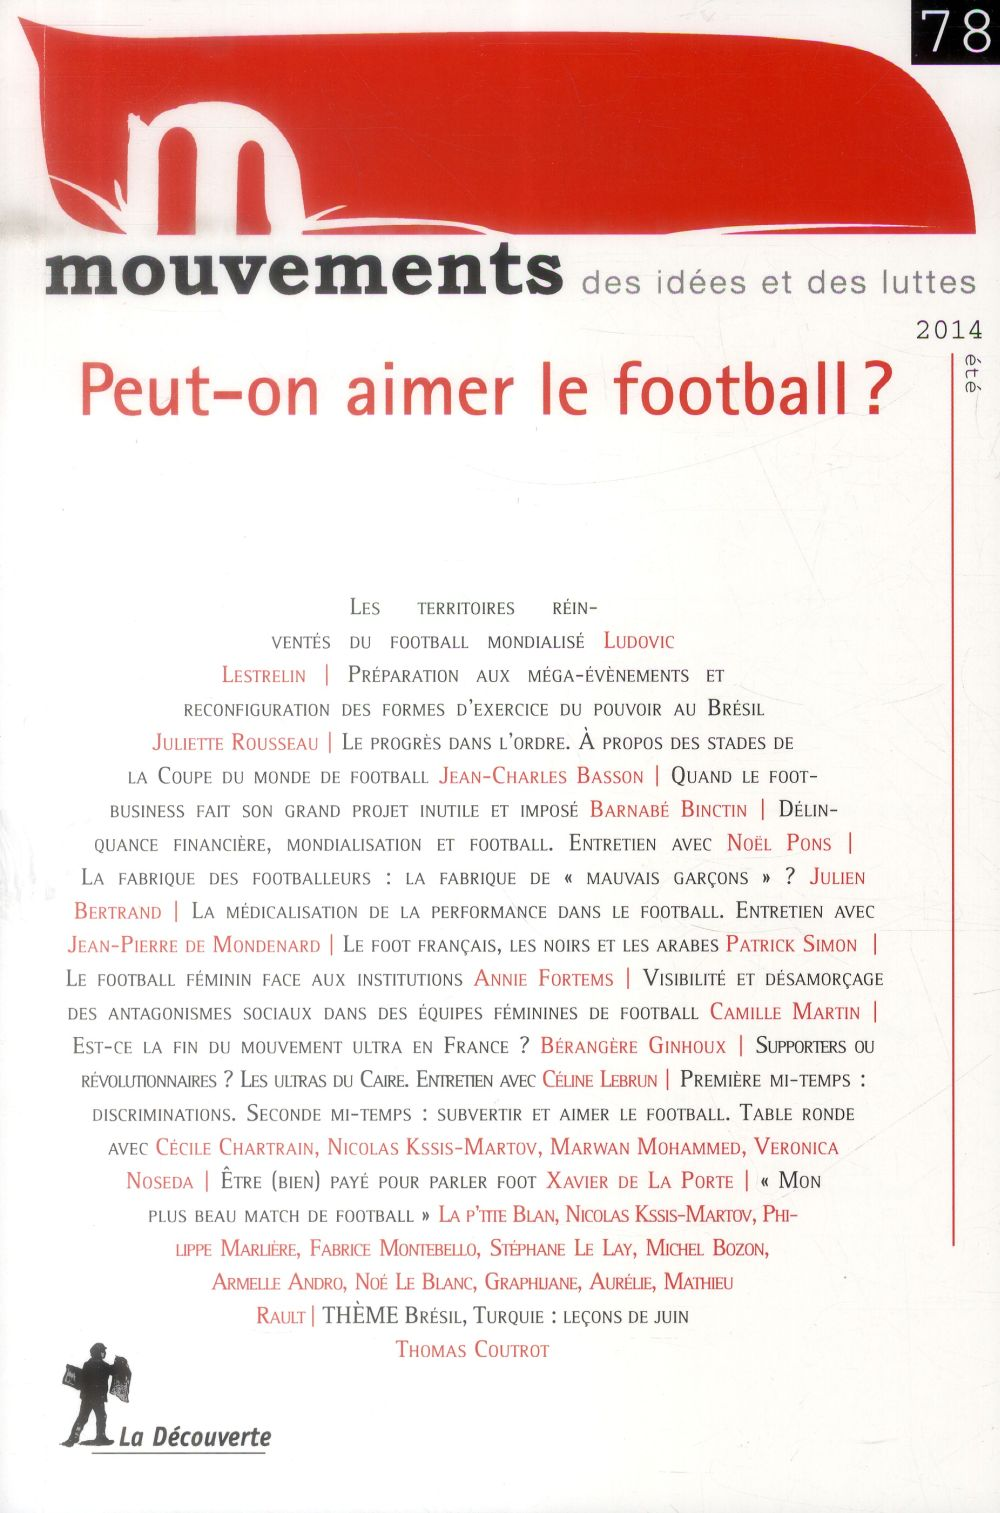 REVUE MOUVEMENTS NUMERO 78 PEUT ON AIMER LE FOOTBALL ?